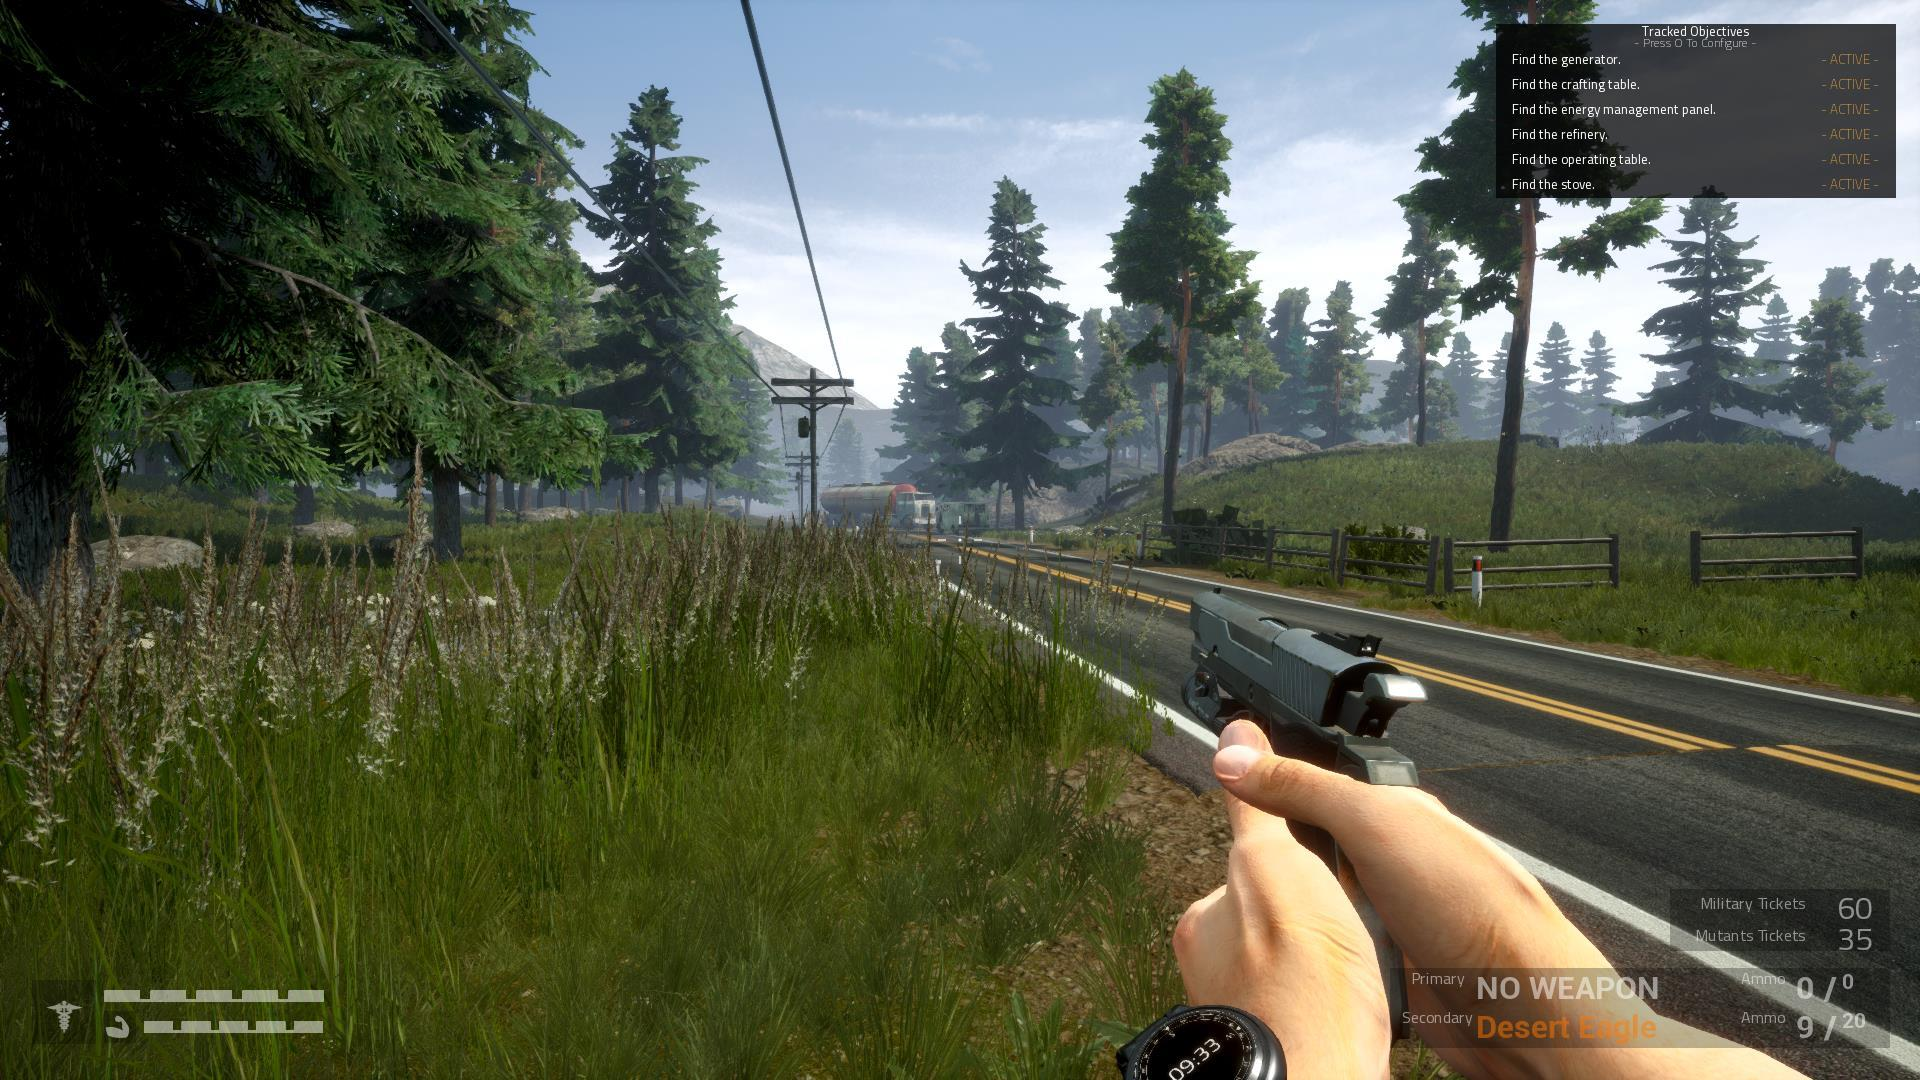 Oct 1, 2017 UPCOMING UPDATE - STILL ALIVE AND KICKIN